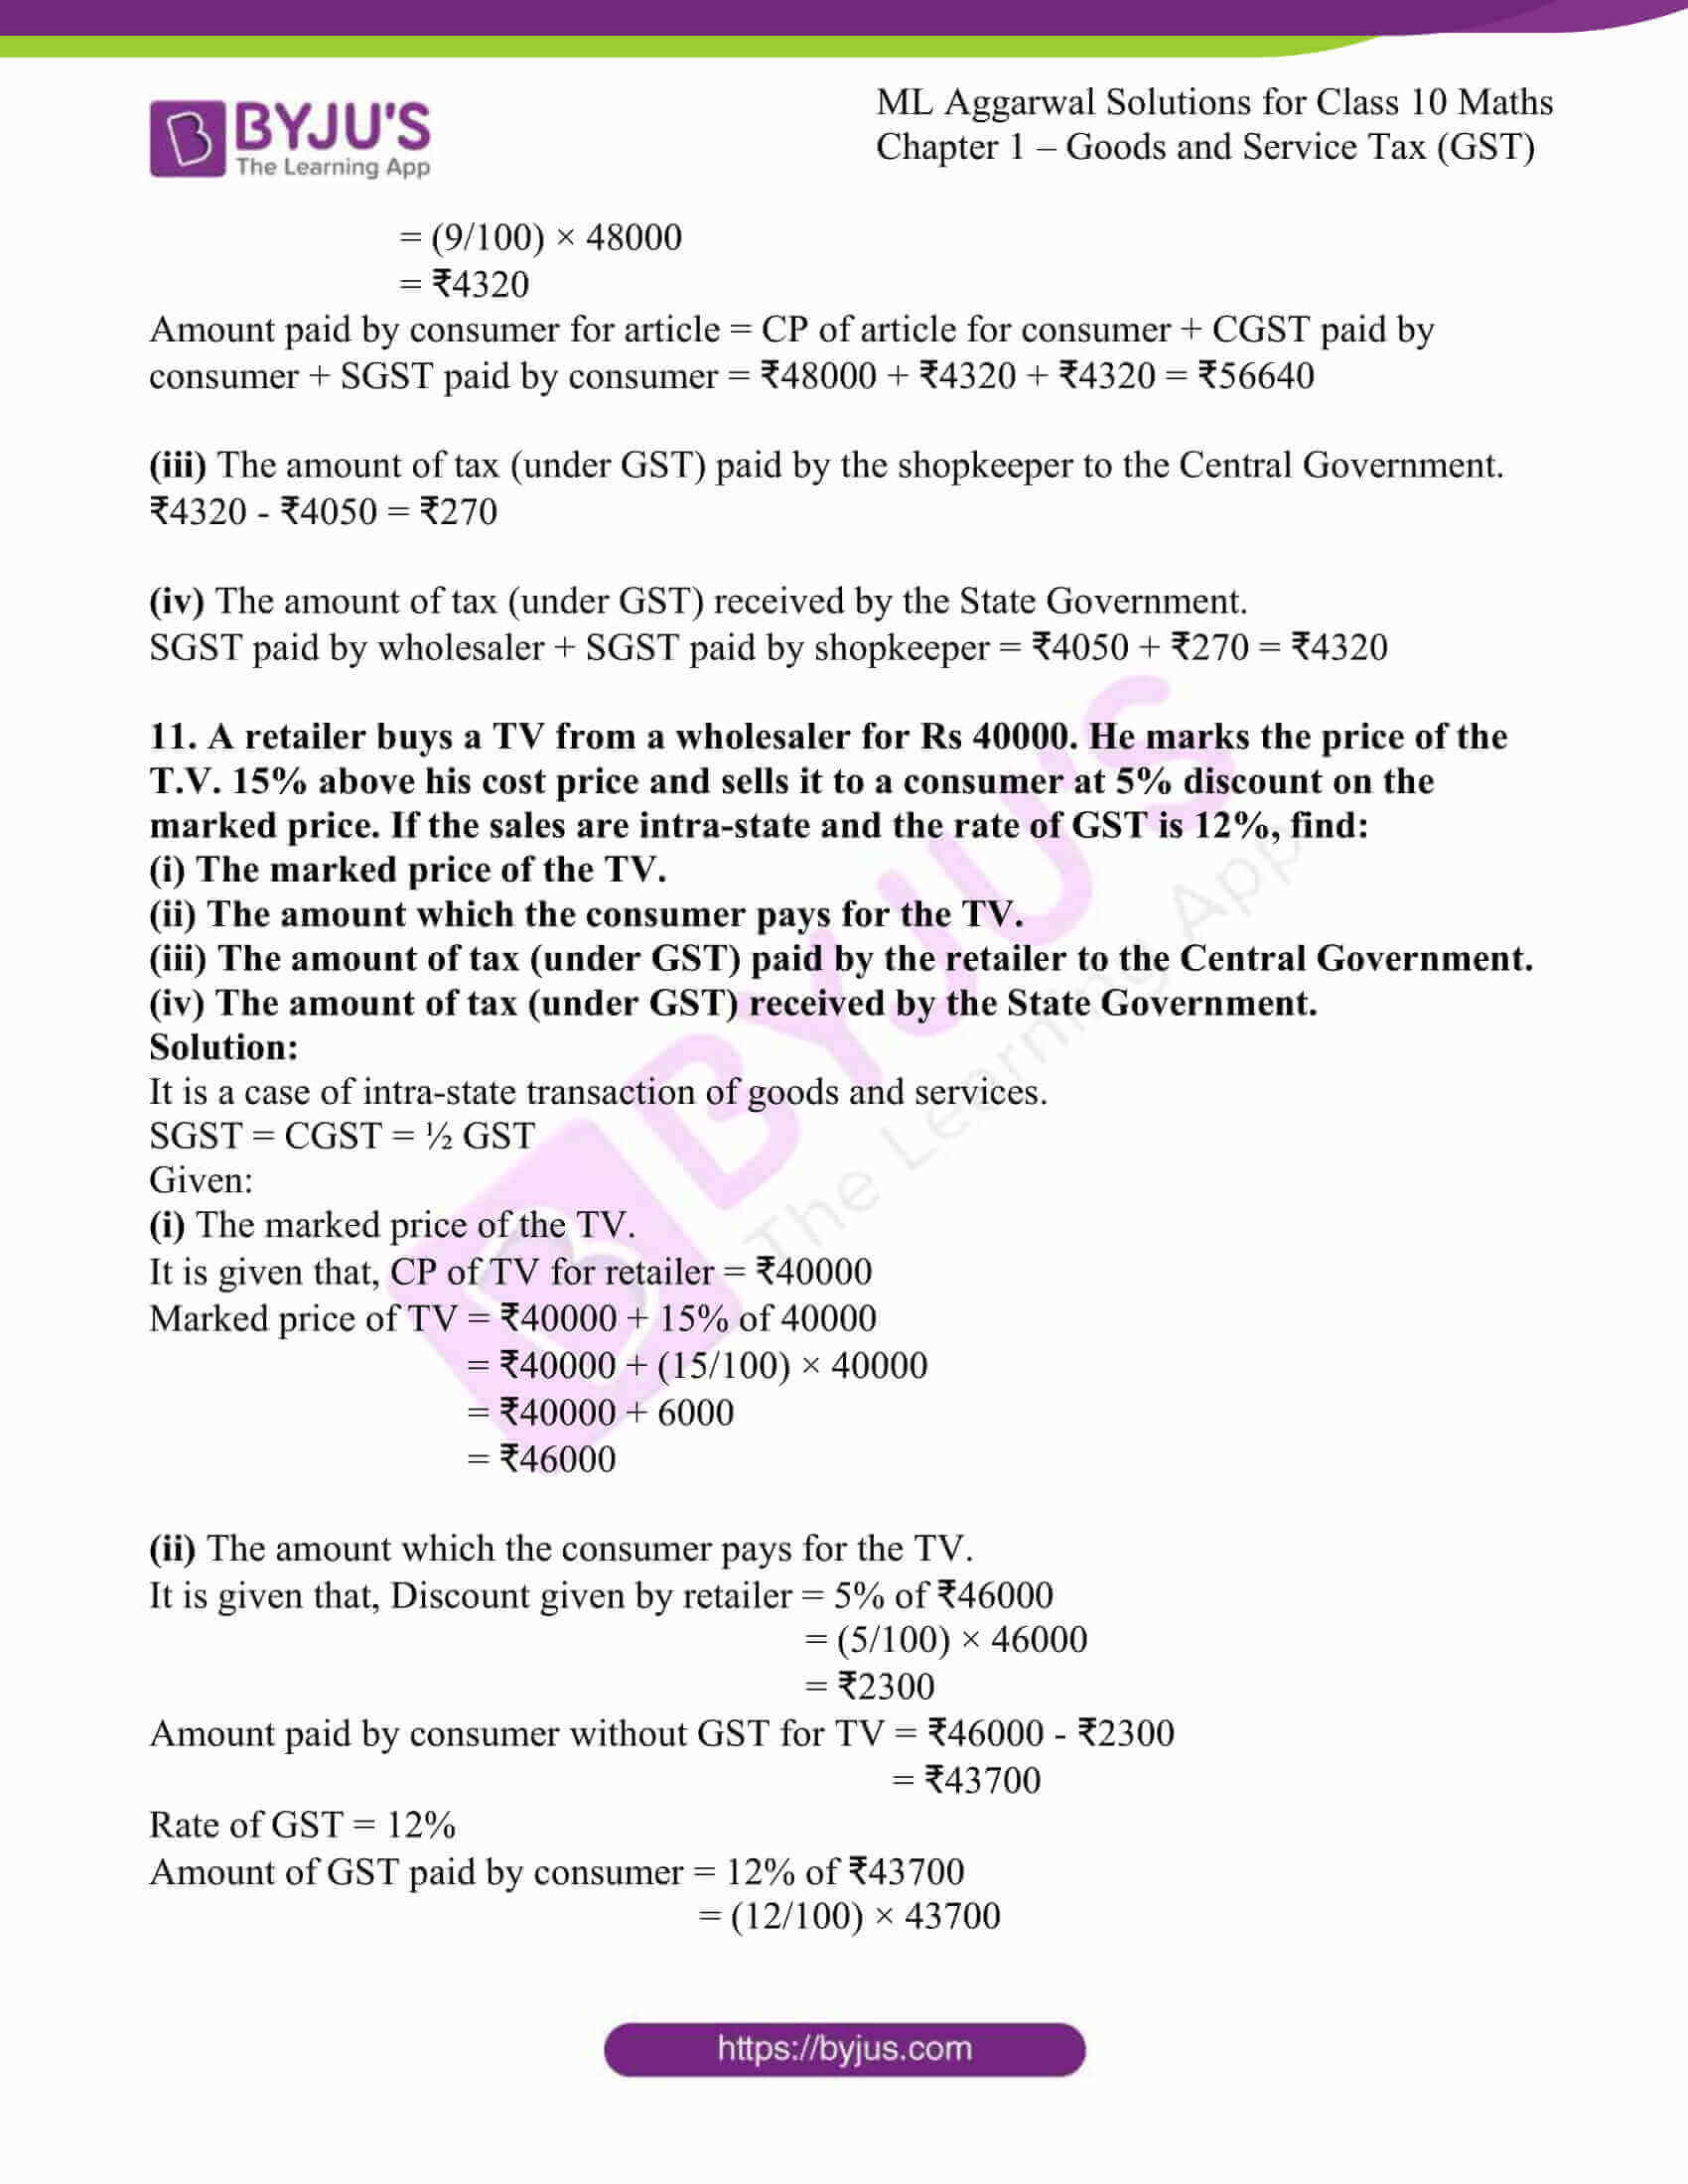 ml aggarwal solutions class 10 maths chapter 1 10